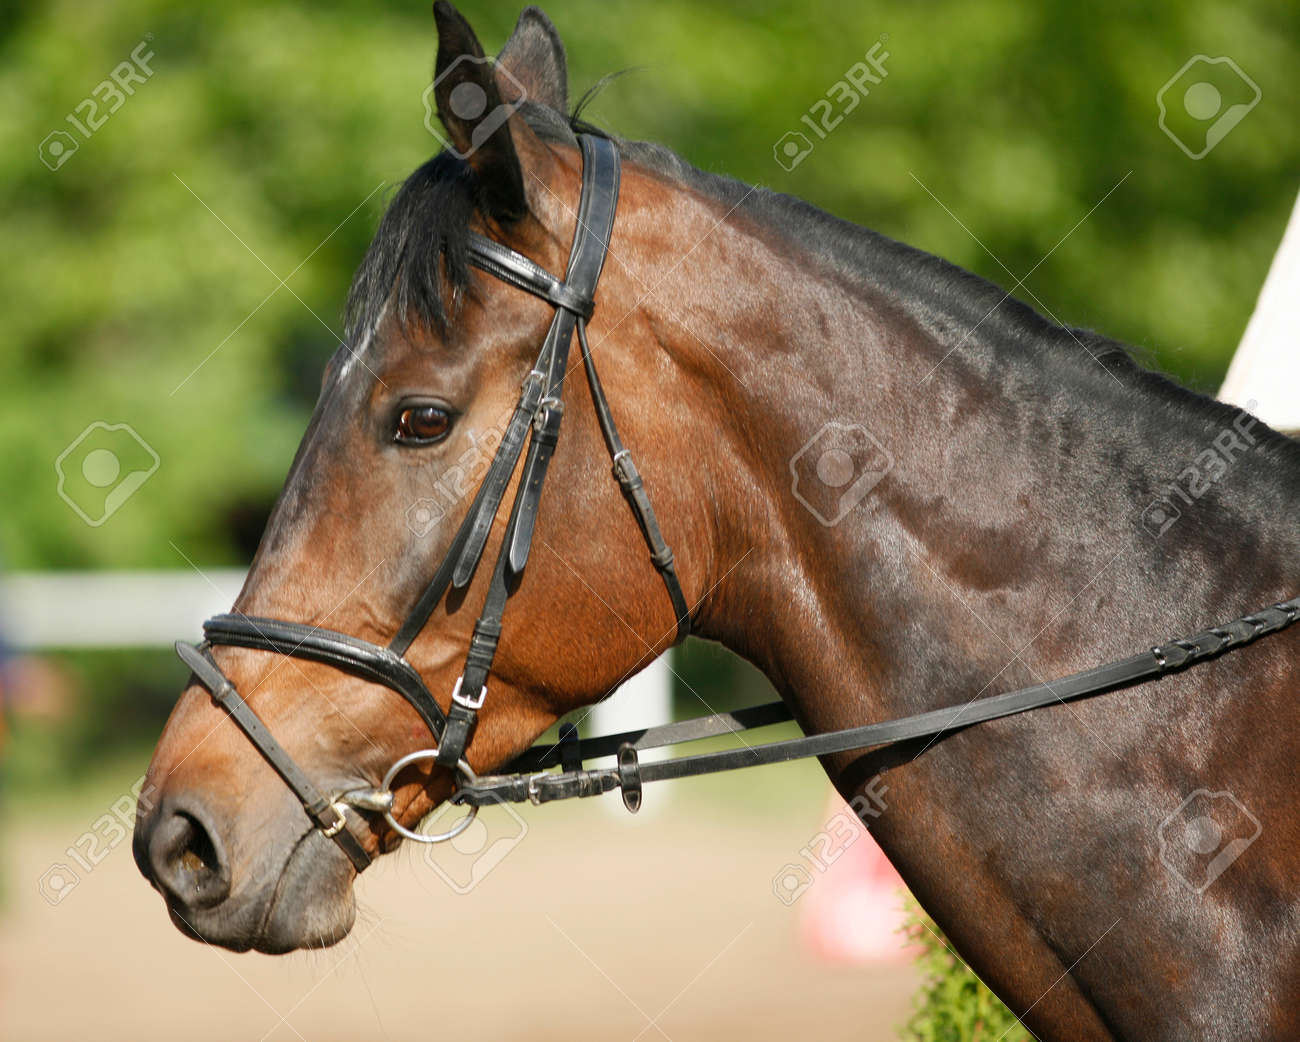 Head Shot Closeup Of A Young Horse On Show Jumping Event Side Stock Photo Picture And Royalty Free Image Image 80563815